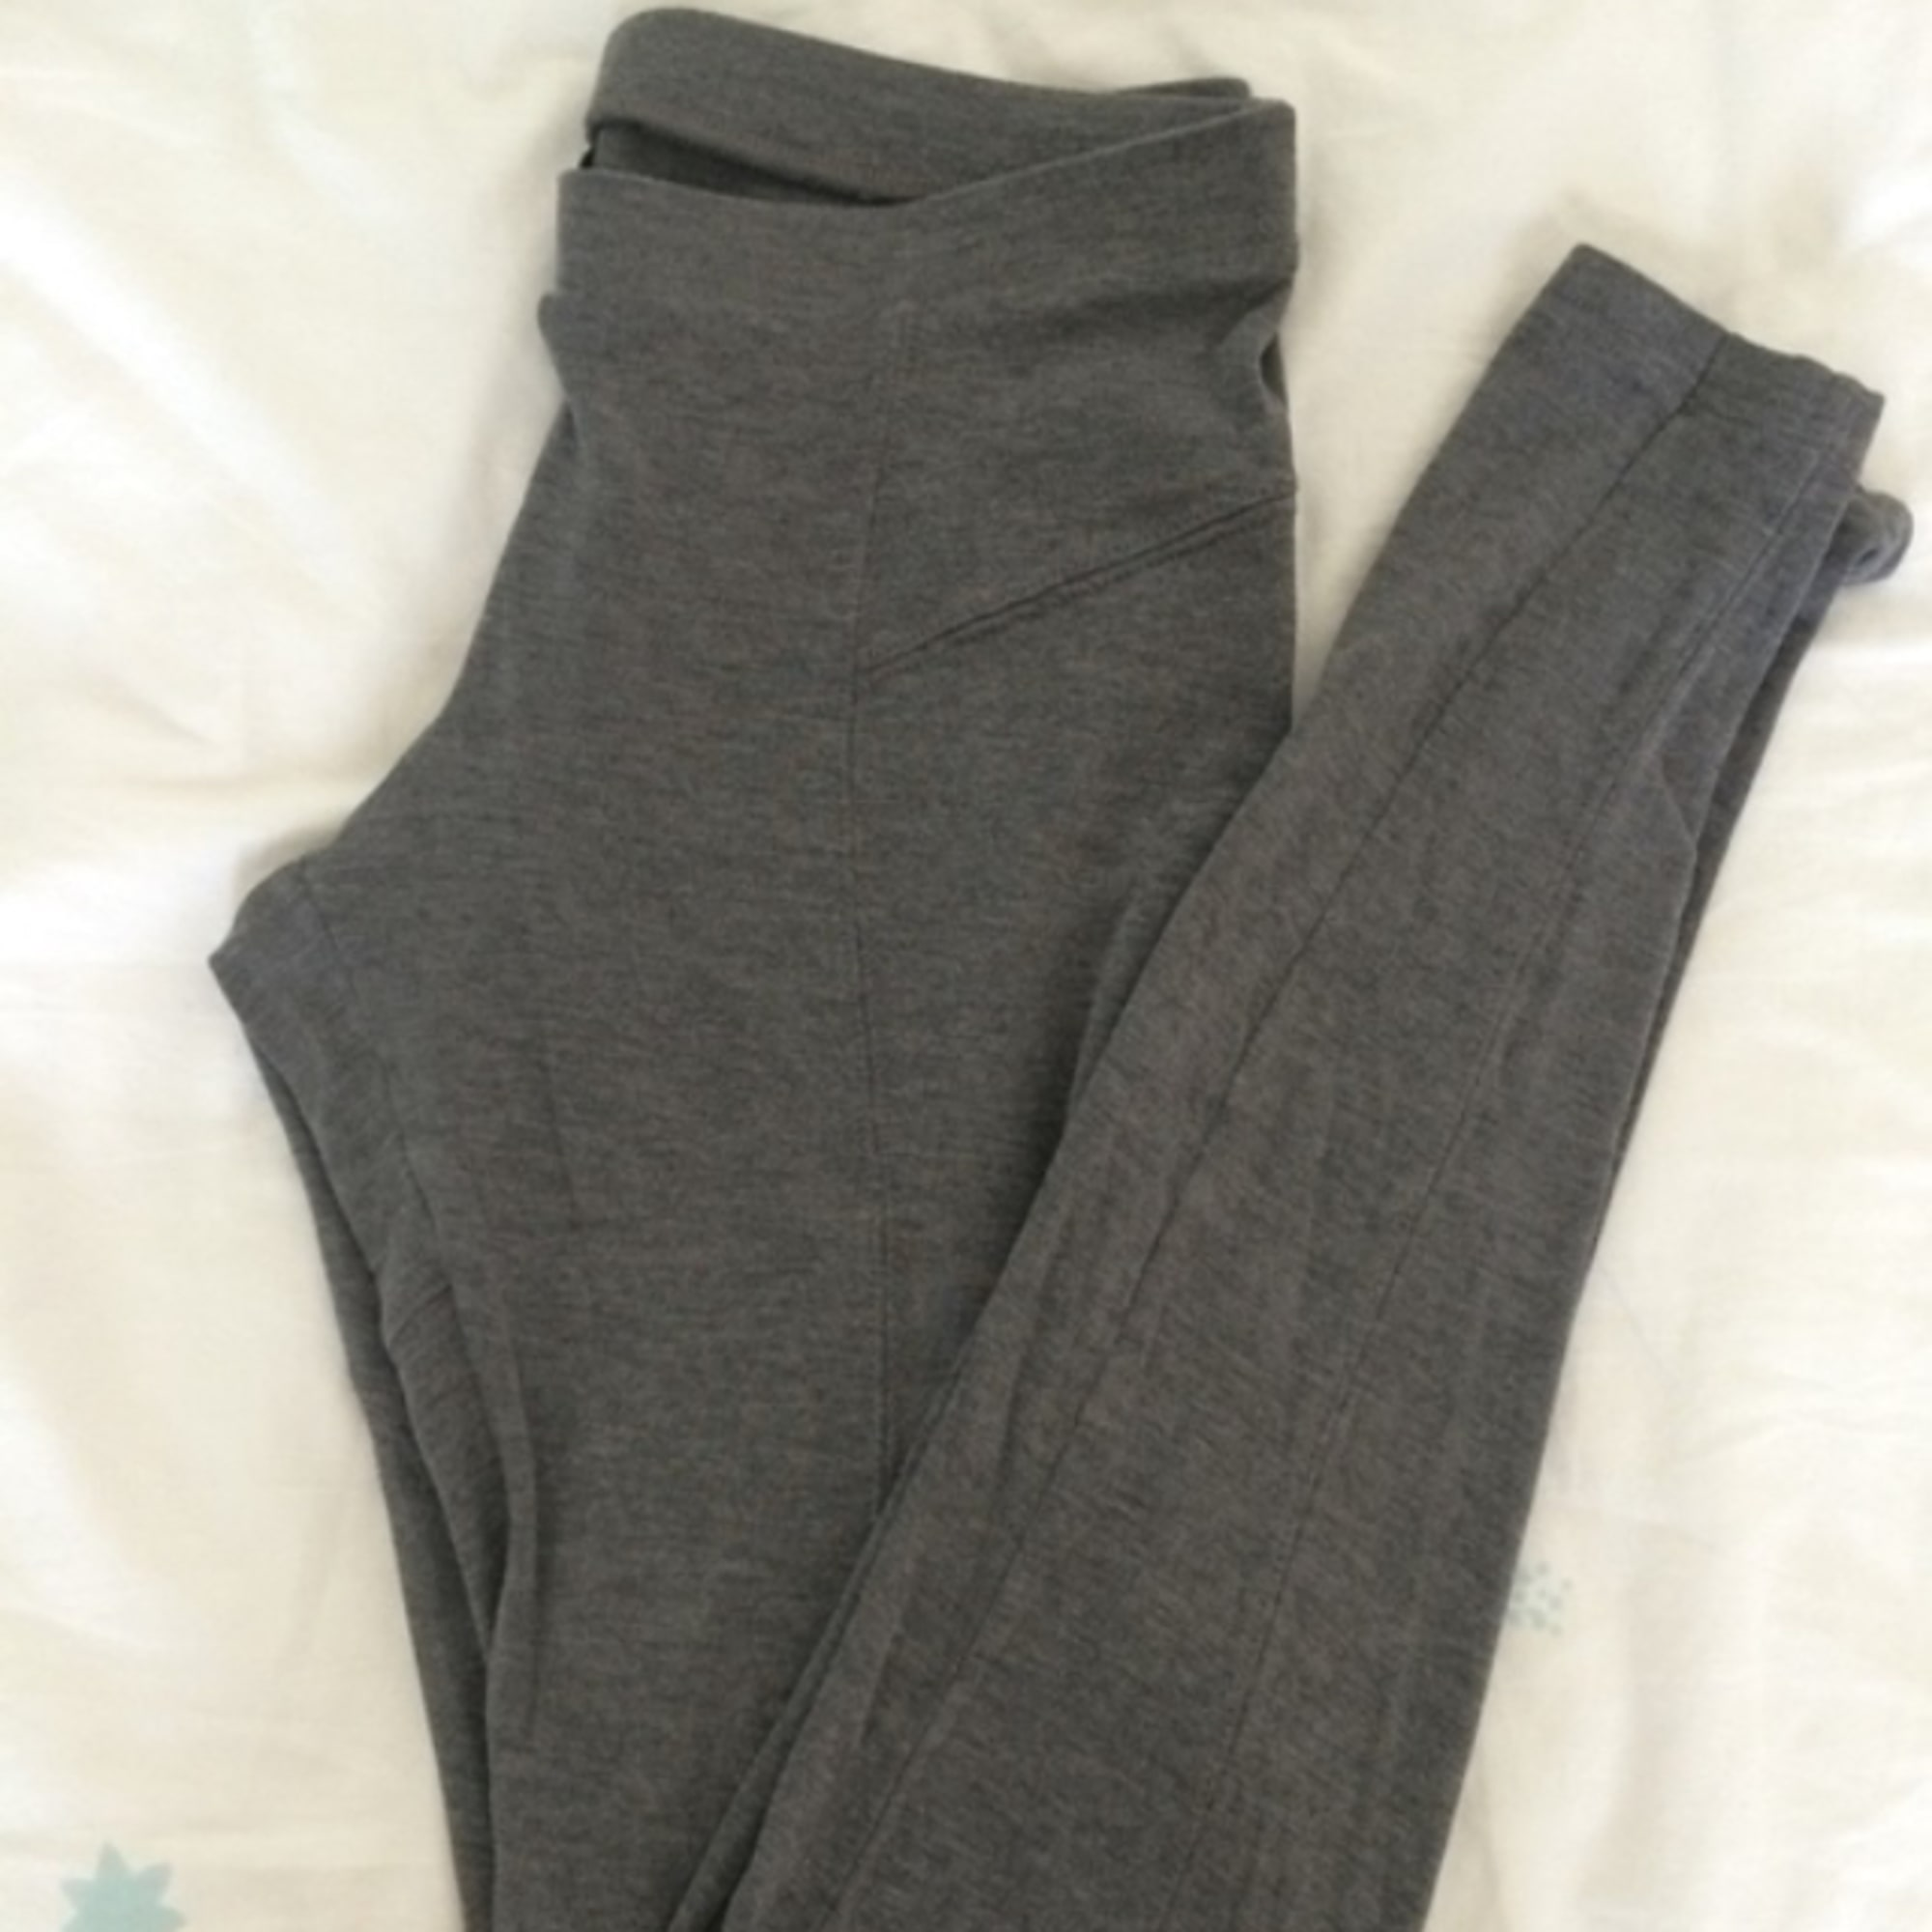 Pantalon de survêtement BENETTON Gris, anthracite